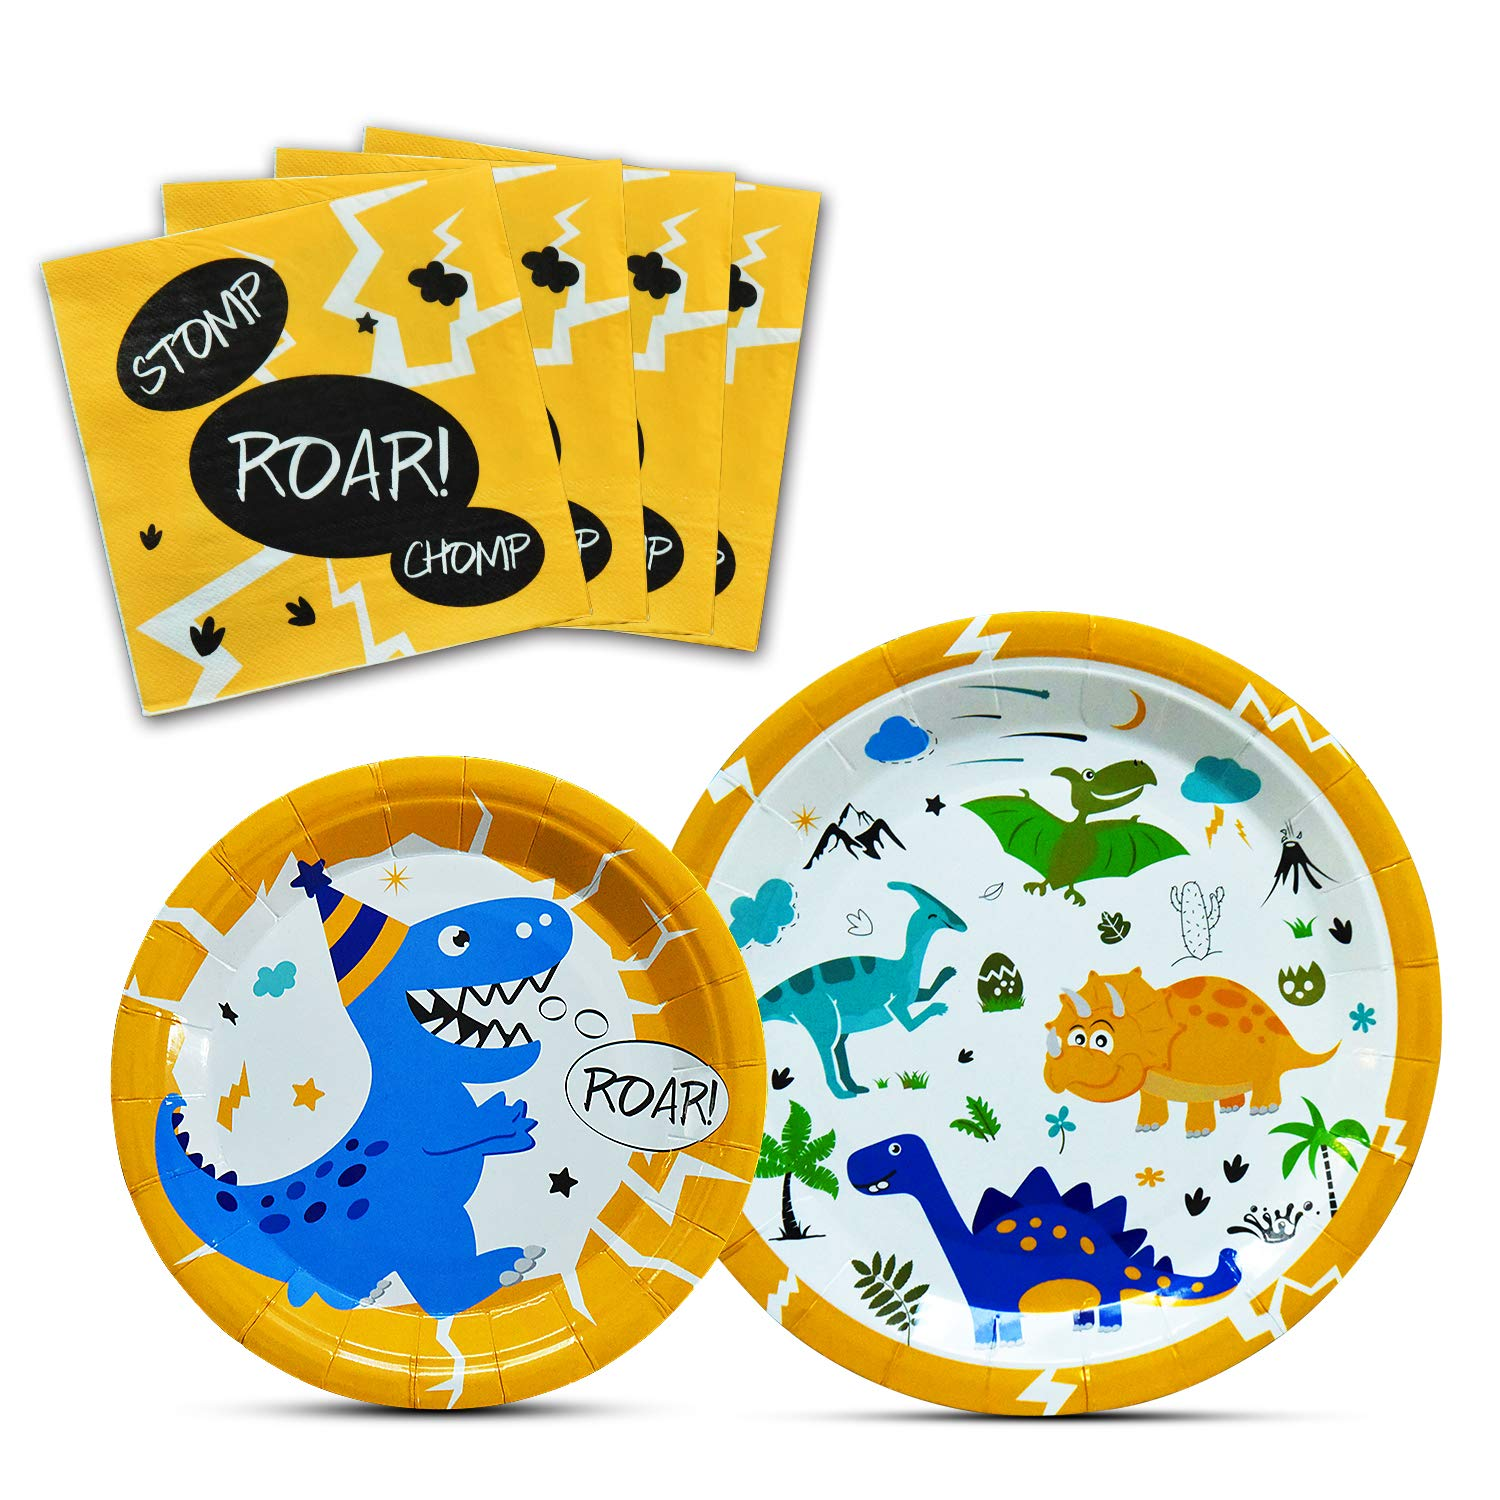 WERNNSAI Dinosaur Party Supplies - Dinosaur Tableware Set for Boys Birthday Baby Shower Dinner Dessert Plates Napkins Serves 16 Guests 48 Pieces by WERNNSAI